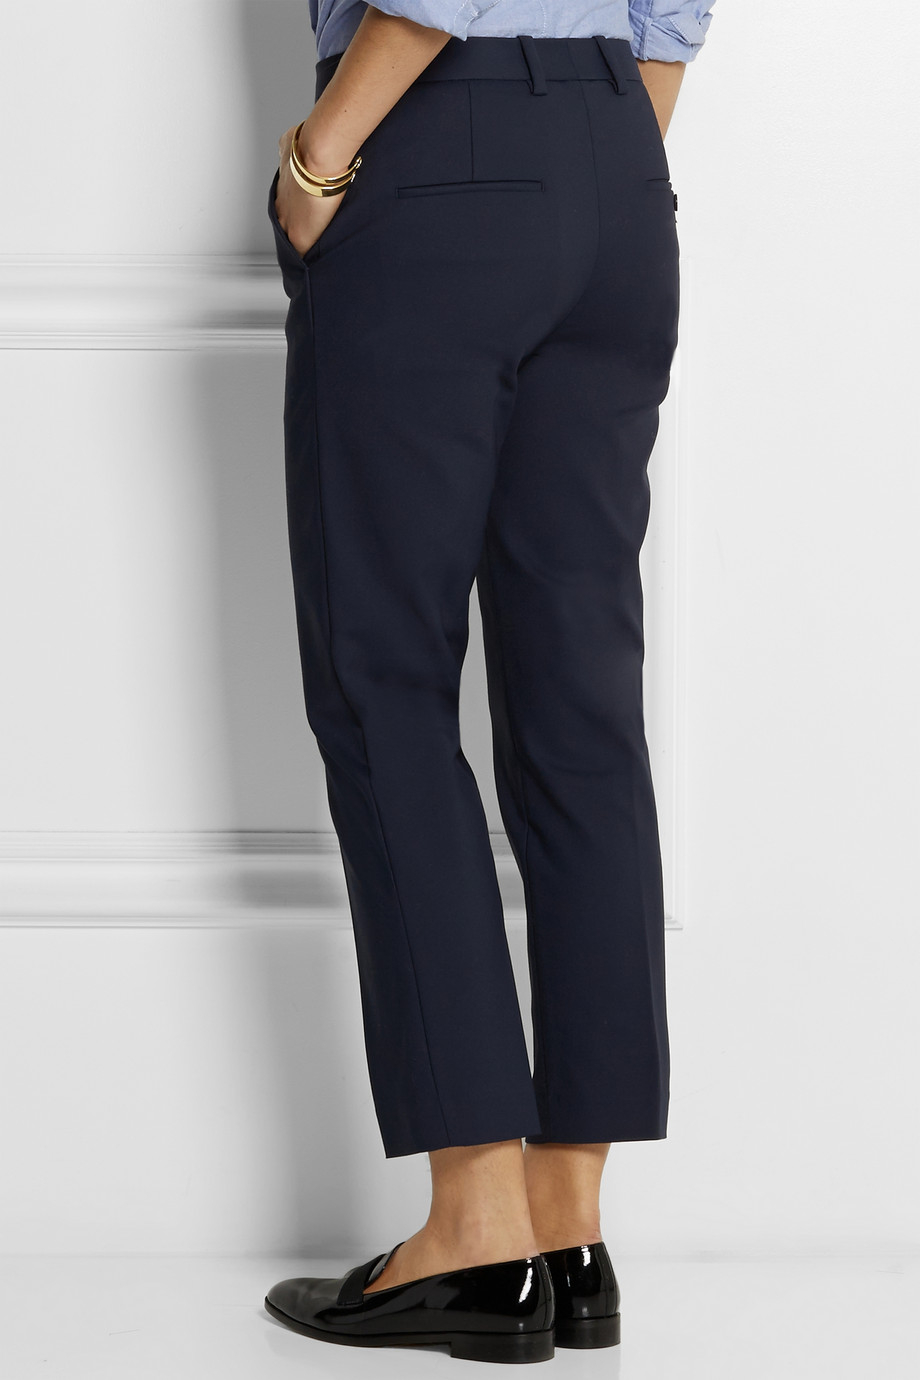 3.1 Phillip Lim Pencil Stretch Cotton-Blend Tapered Pants in Blue - Lyst